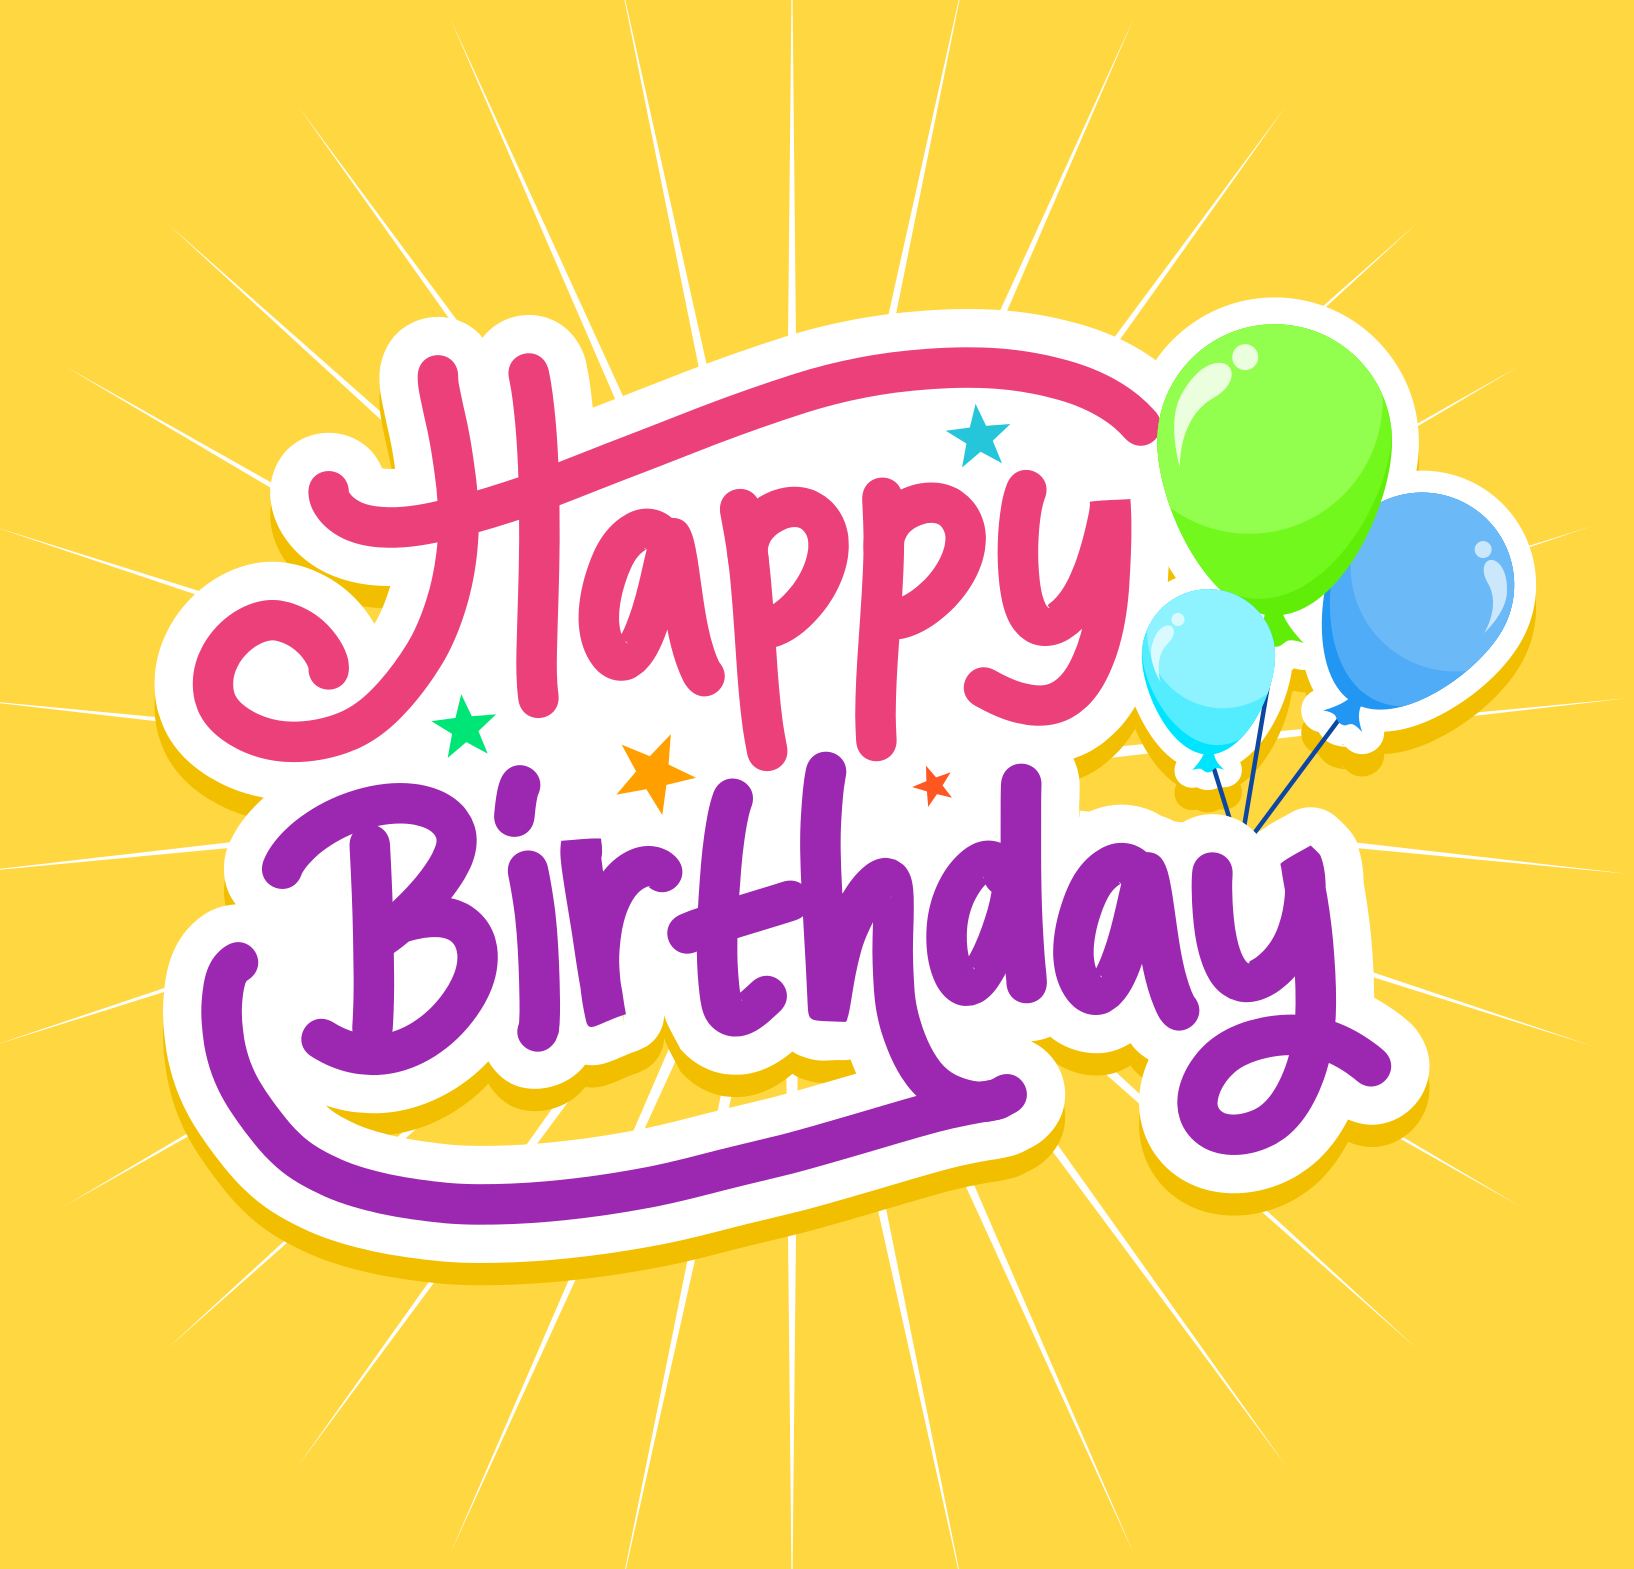 Happy Birthday! Monthly Storytime